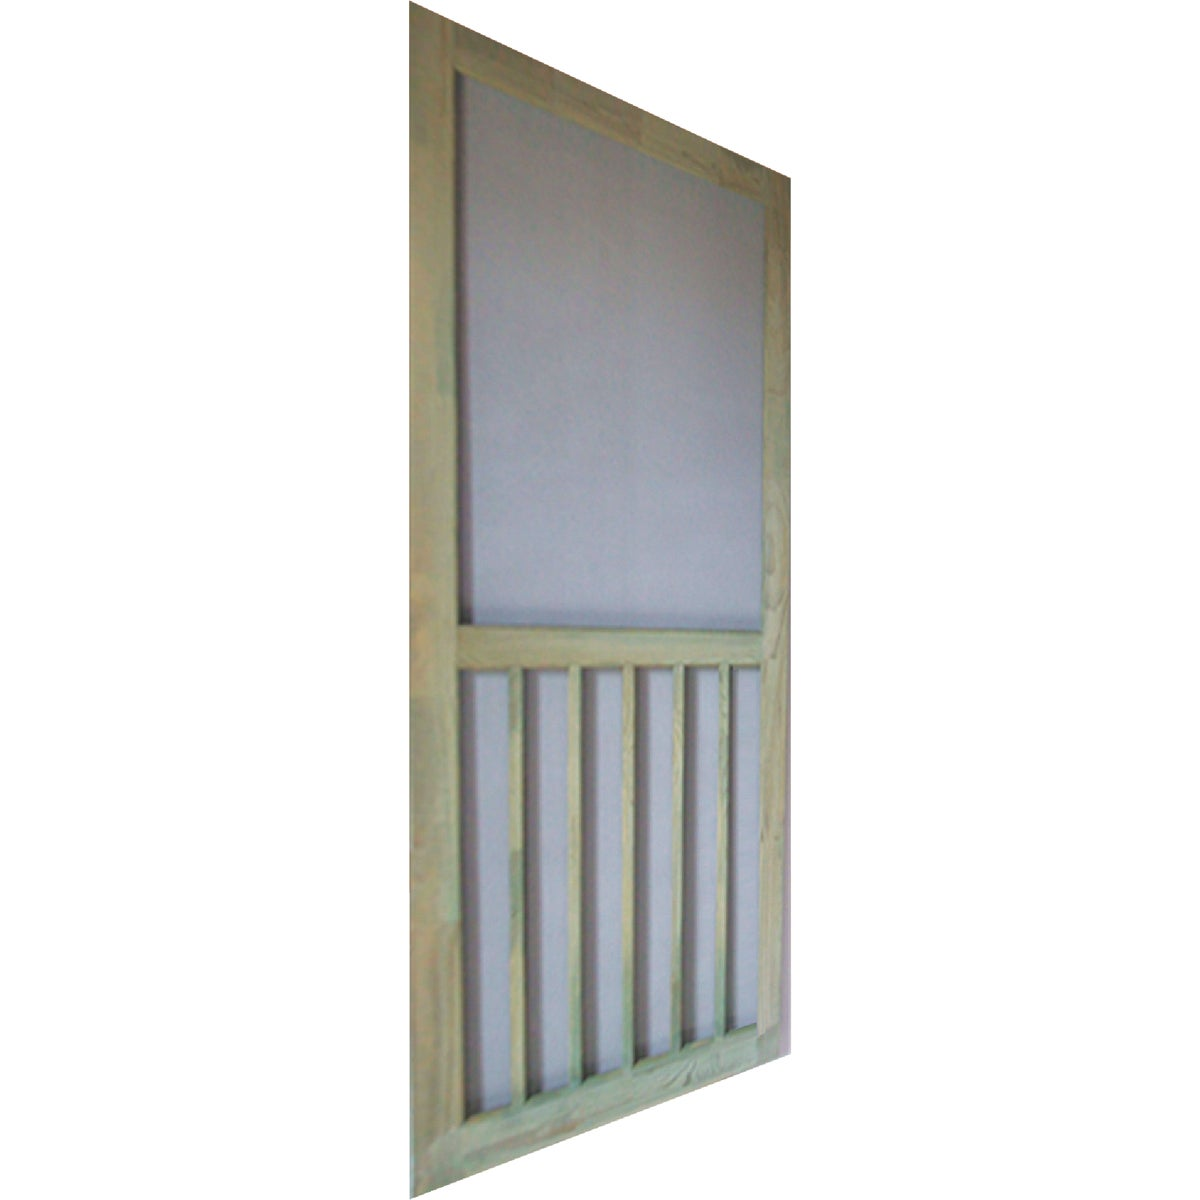 "36"" TREATED SCREEN DOOR - DST536 by Snavely Internatl"